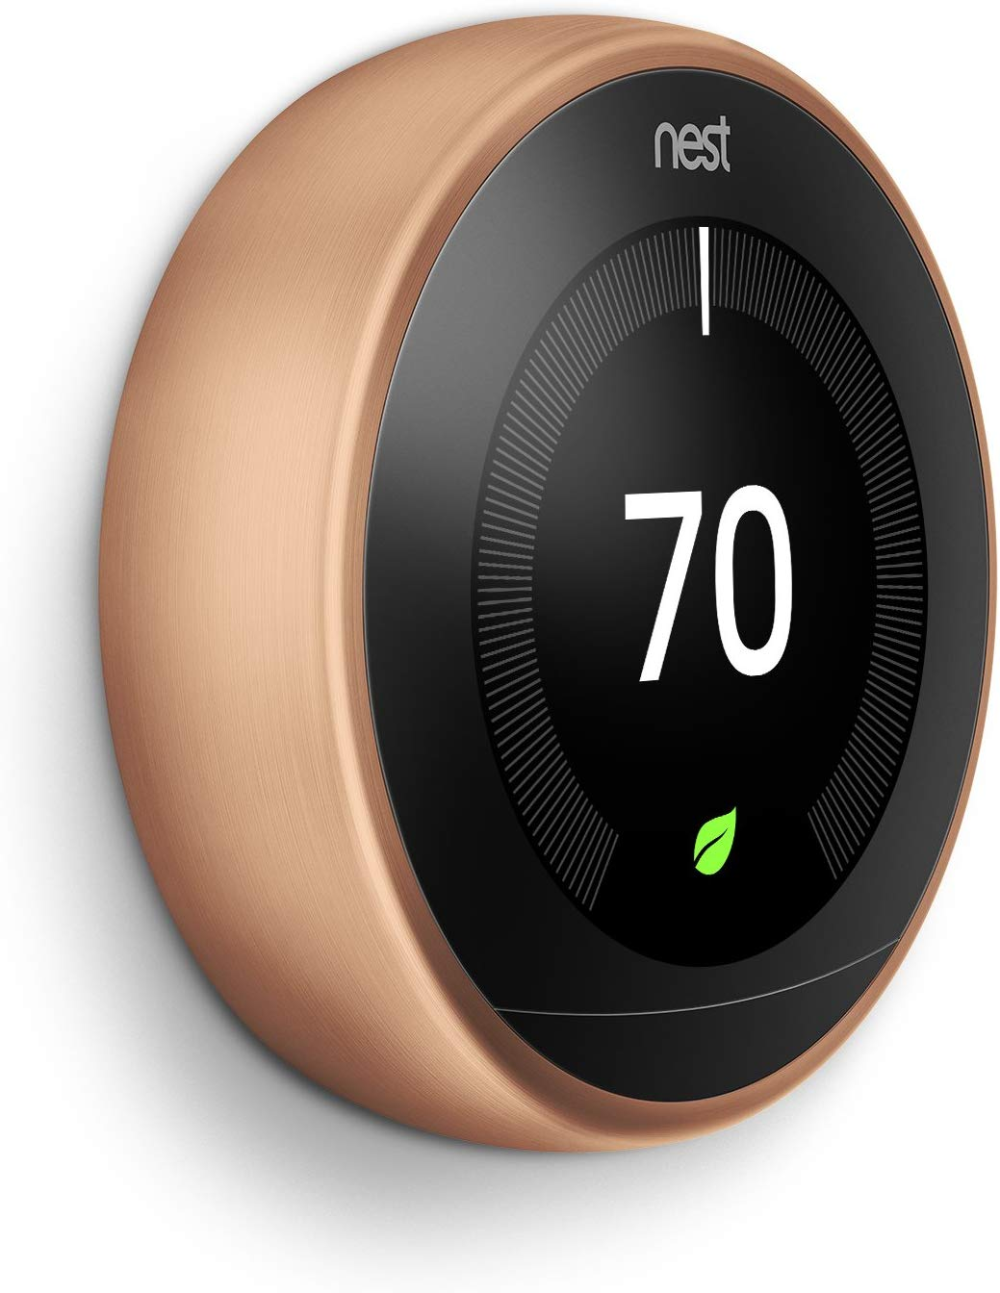 Google T3007es Nest Learning Thermostat 3rd Gen Smart Thermostat Stainless Steel Works With Alexa Nest Learning Thermostat Nest Learning Works With Alexa